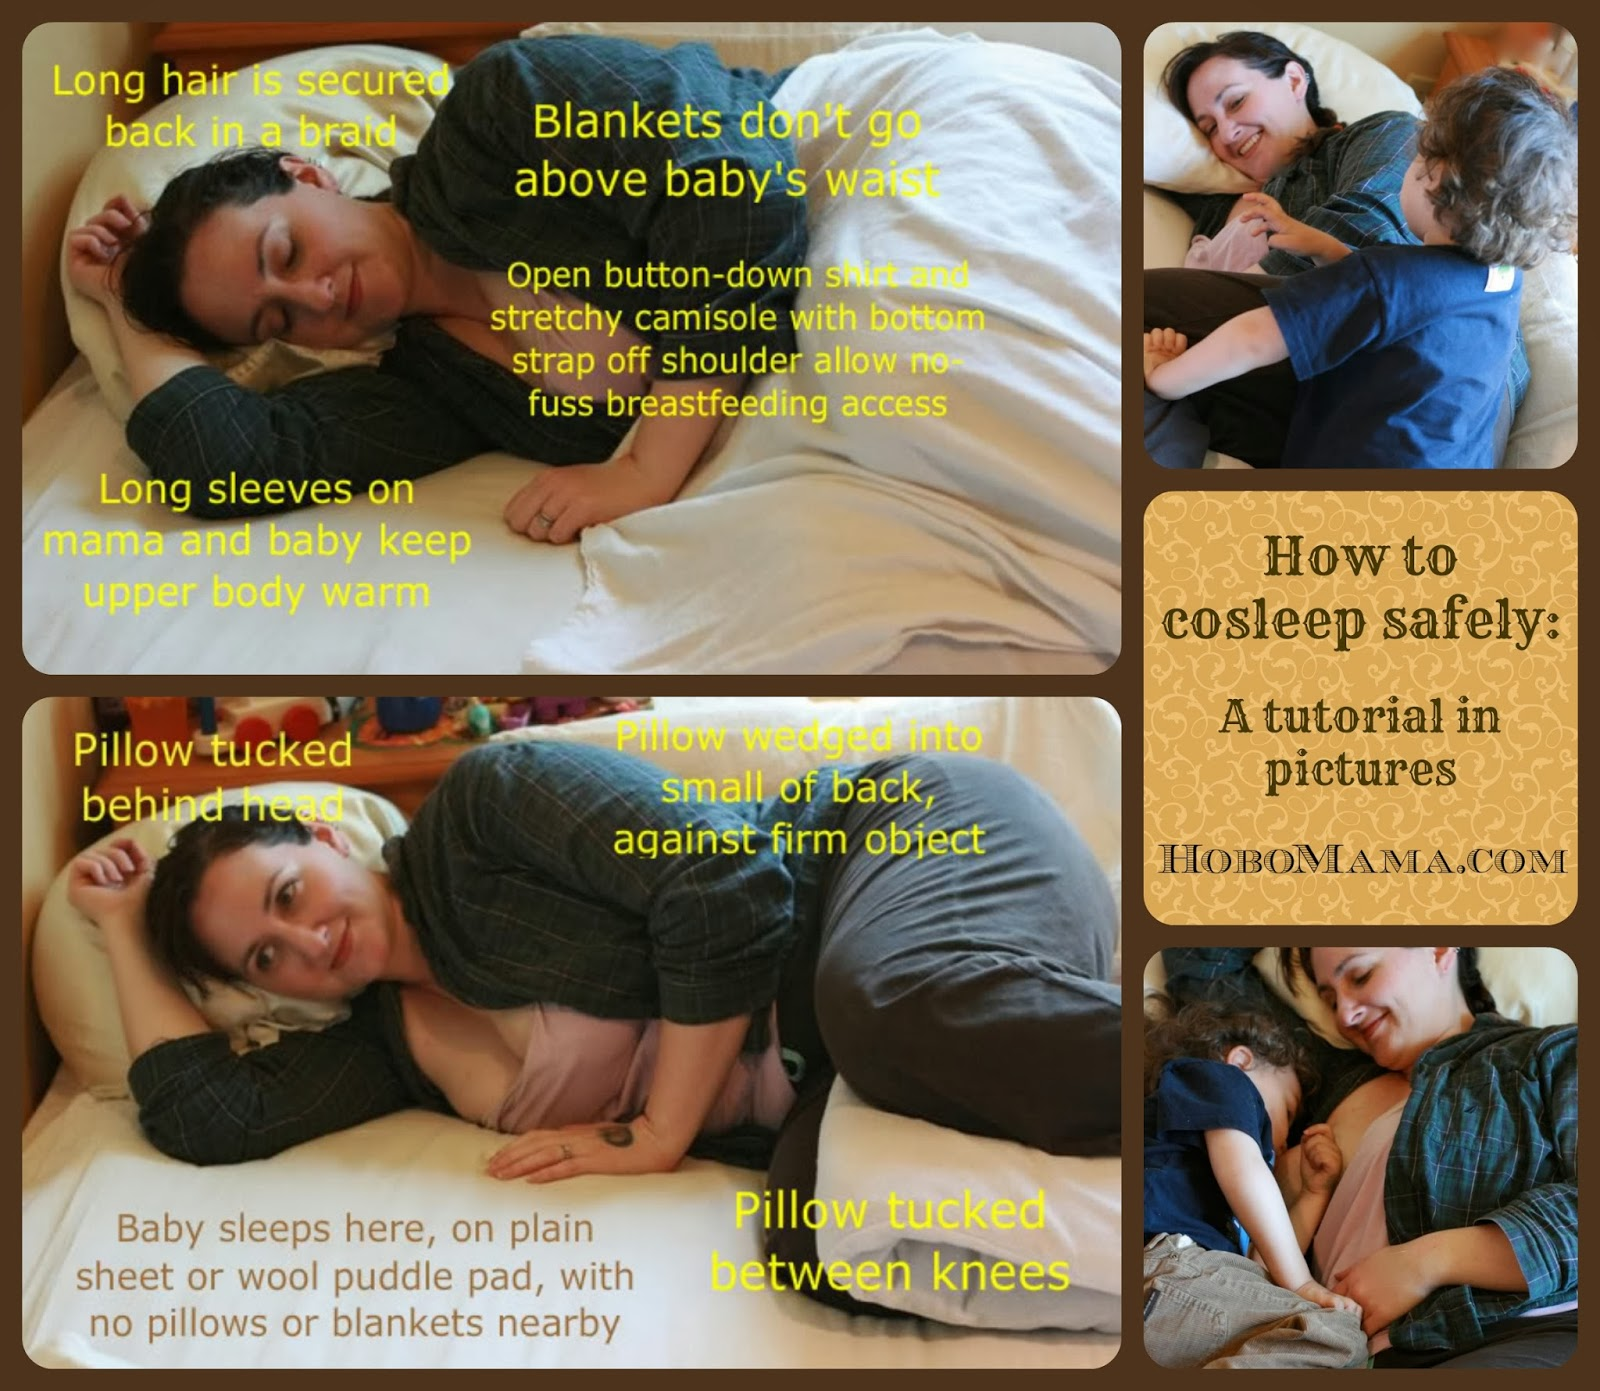 How to cosleep safely: A tutorial in pictures == Hobo Mama